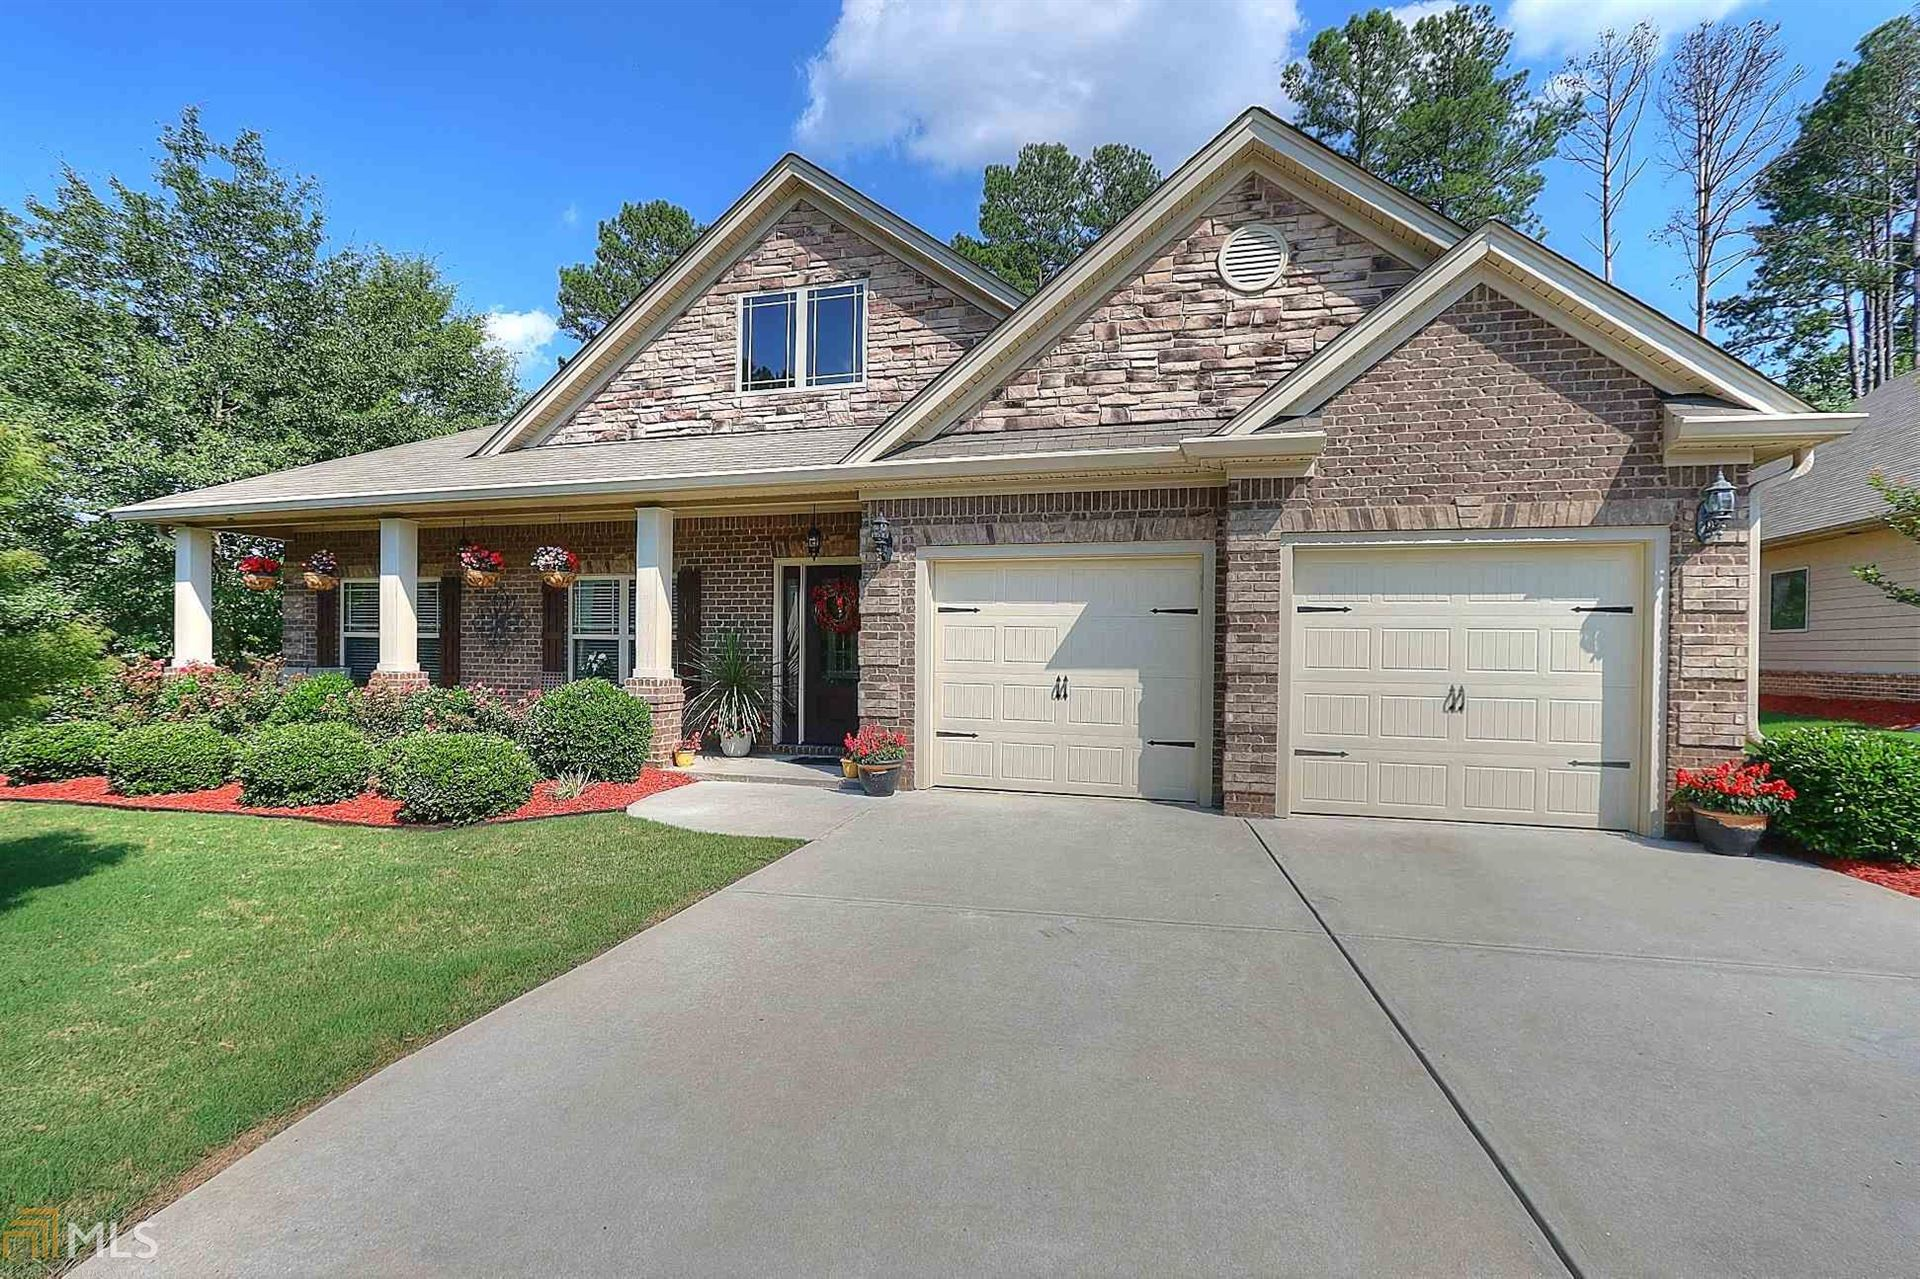 9181 Plantation Cir, Covington, GA 30014 - #: 8815885